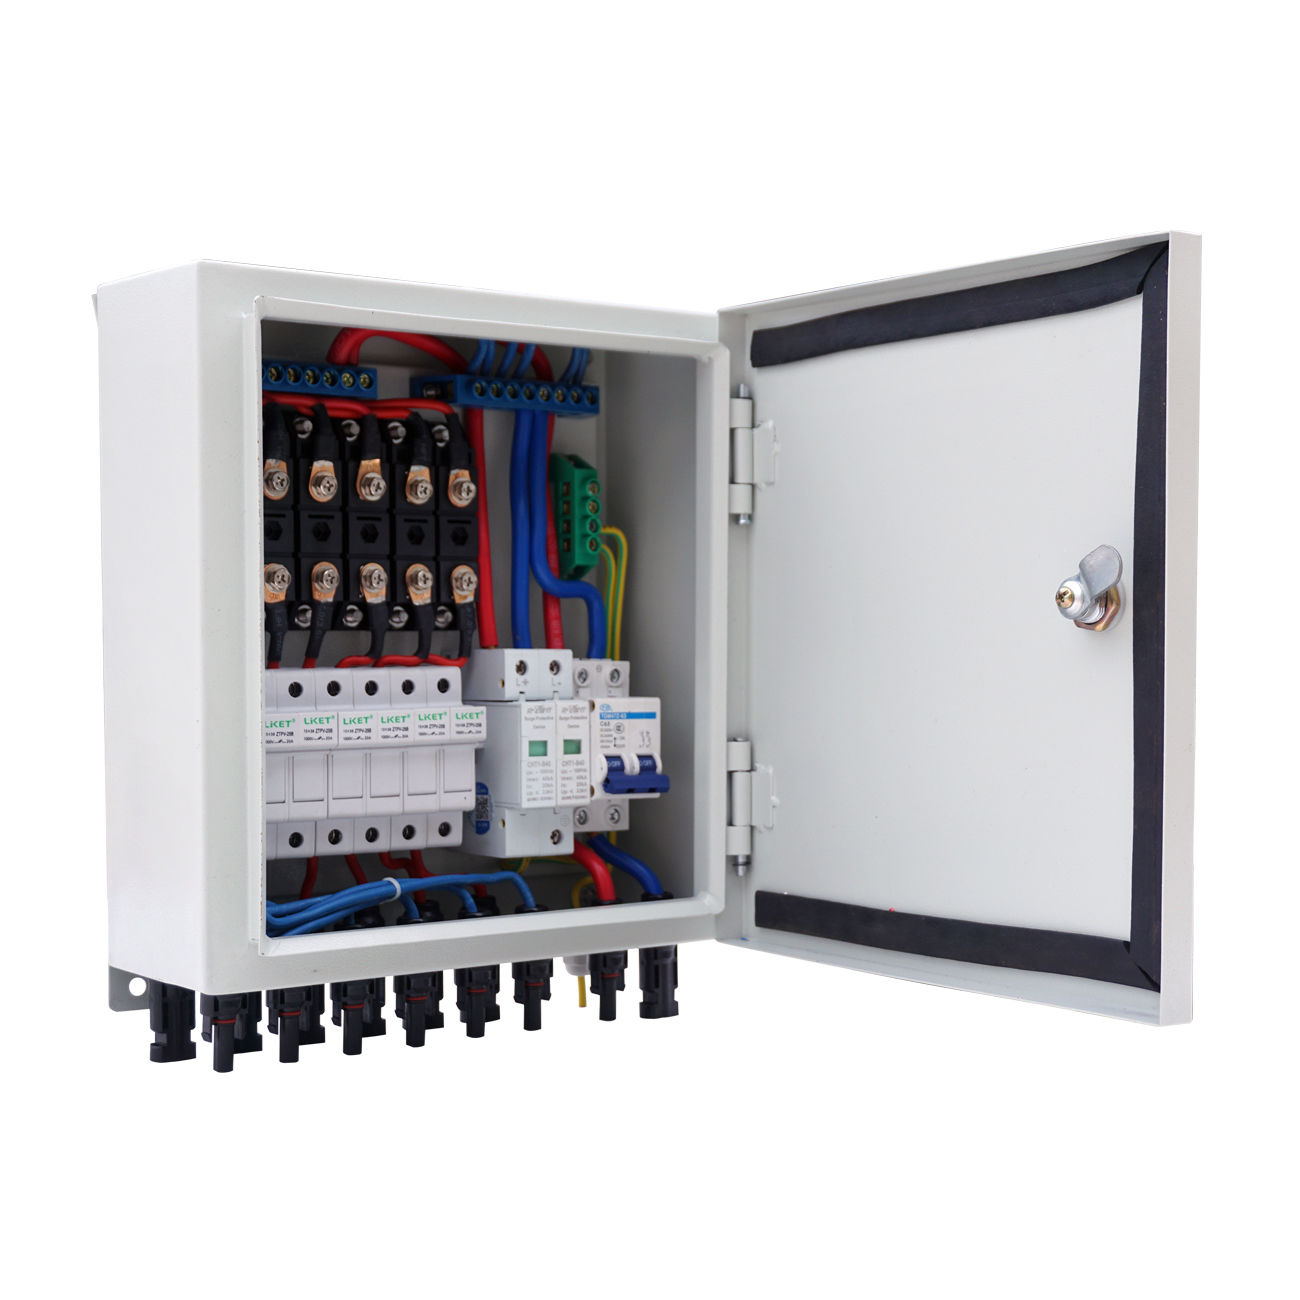 6-String Solar PV Combiner Box W Circuit Breakers Surge Lightning Protection 12 string input to 1 string output for off grid solar energy system photovoltaic array solar pv combiner box